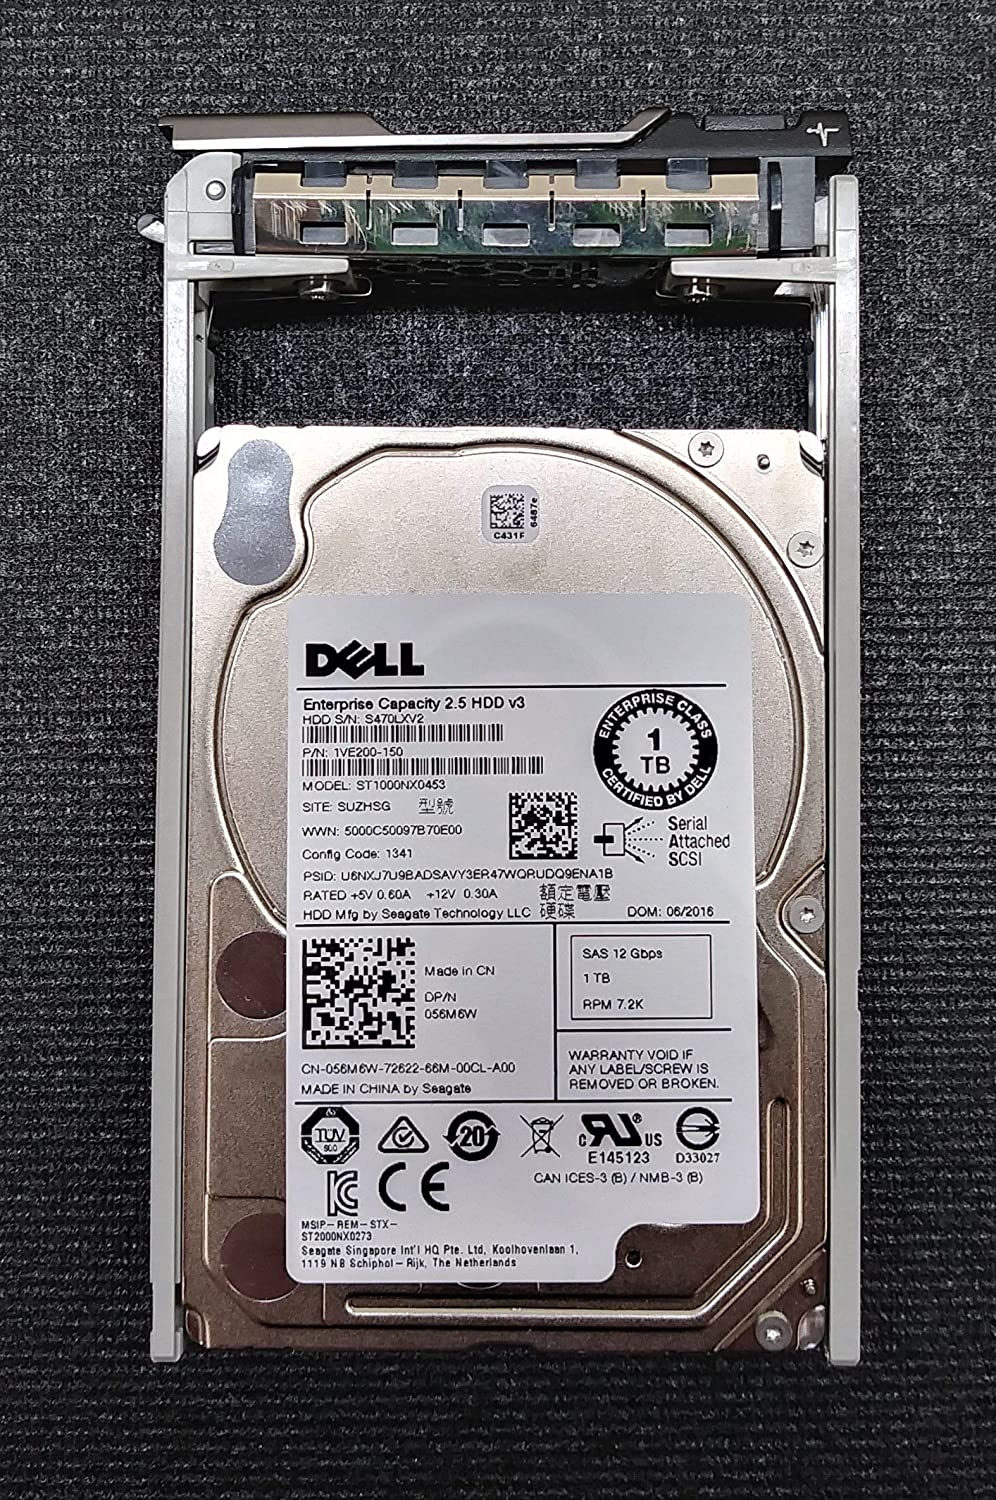 "56M6W - DELL ENTERPRISE CLASS 1TB 7.2K NL SAS 2.5"" 12Gb/s 128MB 512e HDD W/TRAY FOR POWEREDGE R610 R710 T610 R410 T410 T710 T310 R510 R810 R910 R720 R620 T620 R820 T320 T420 R320 R420 R920"